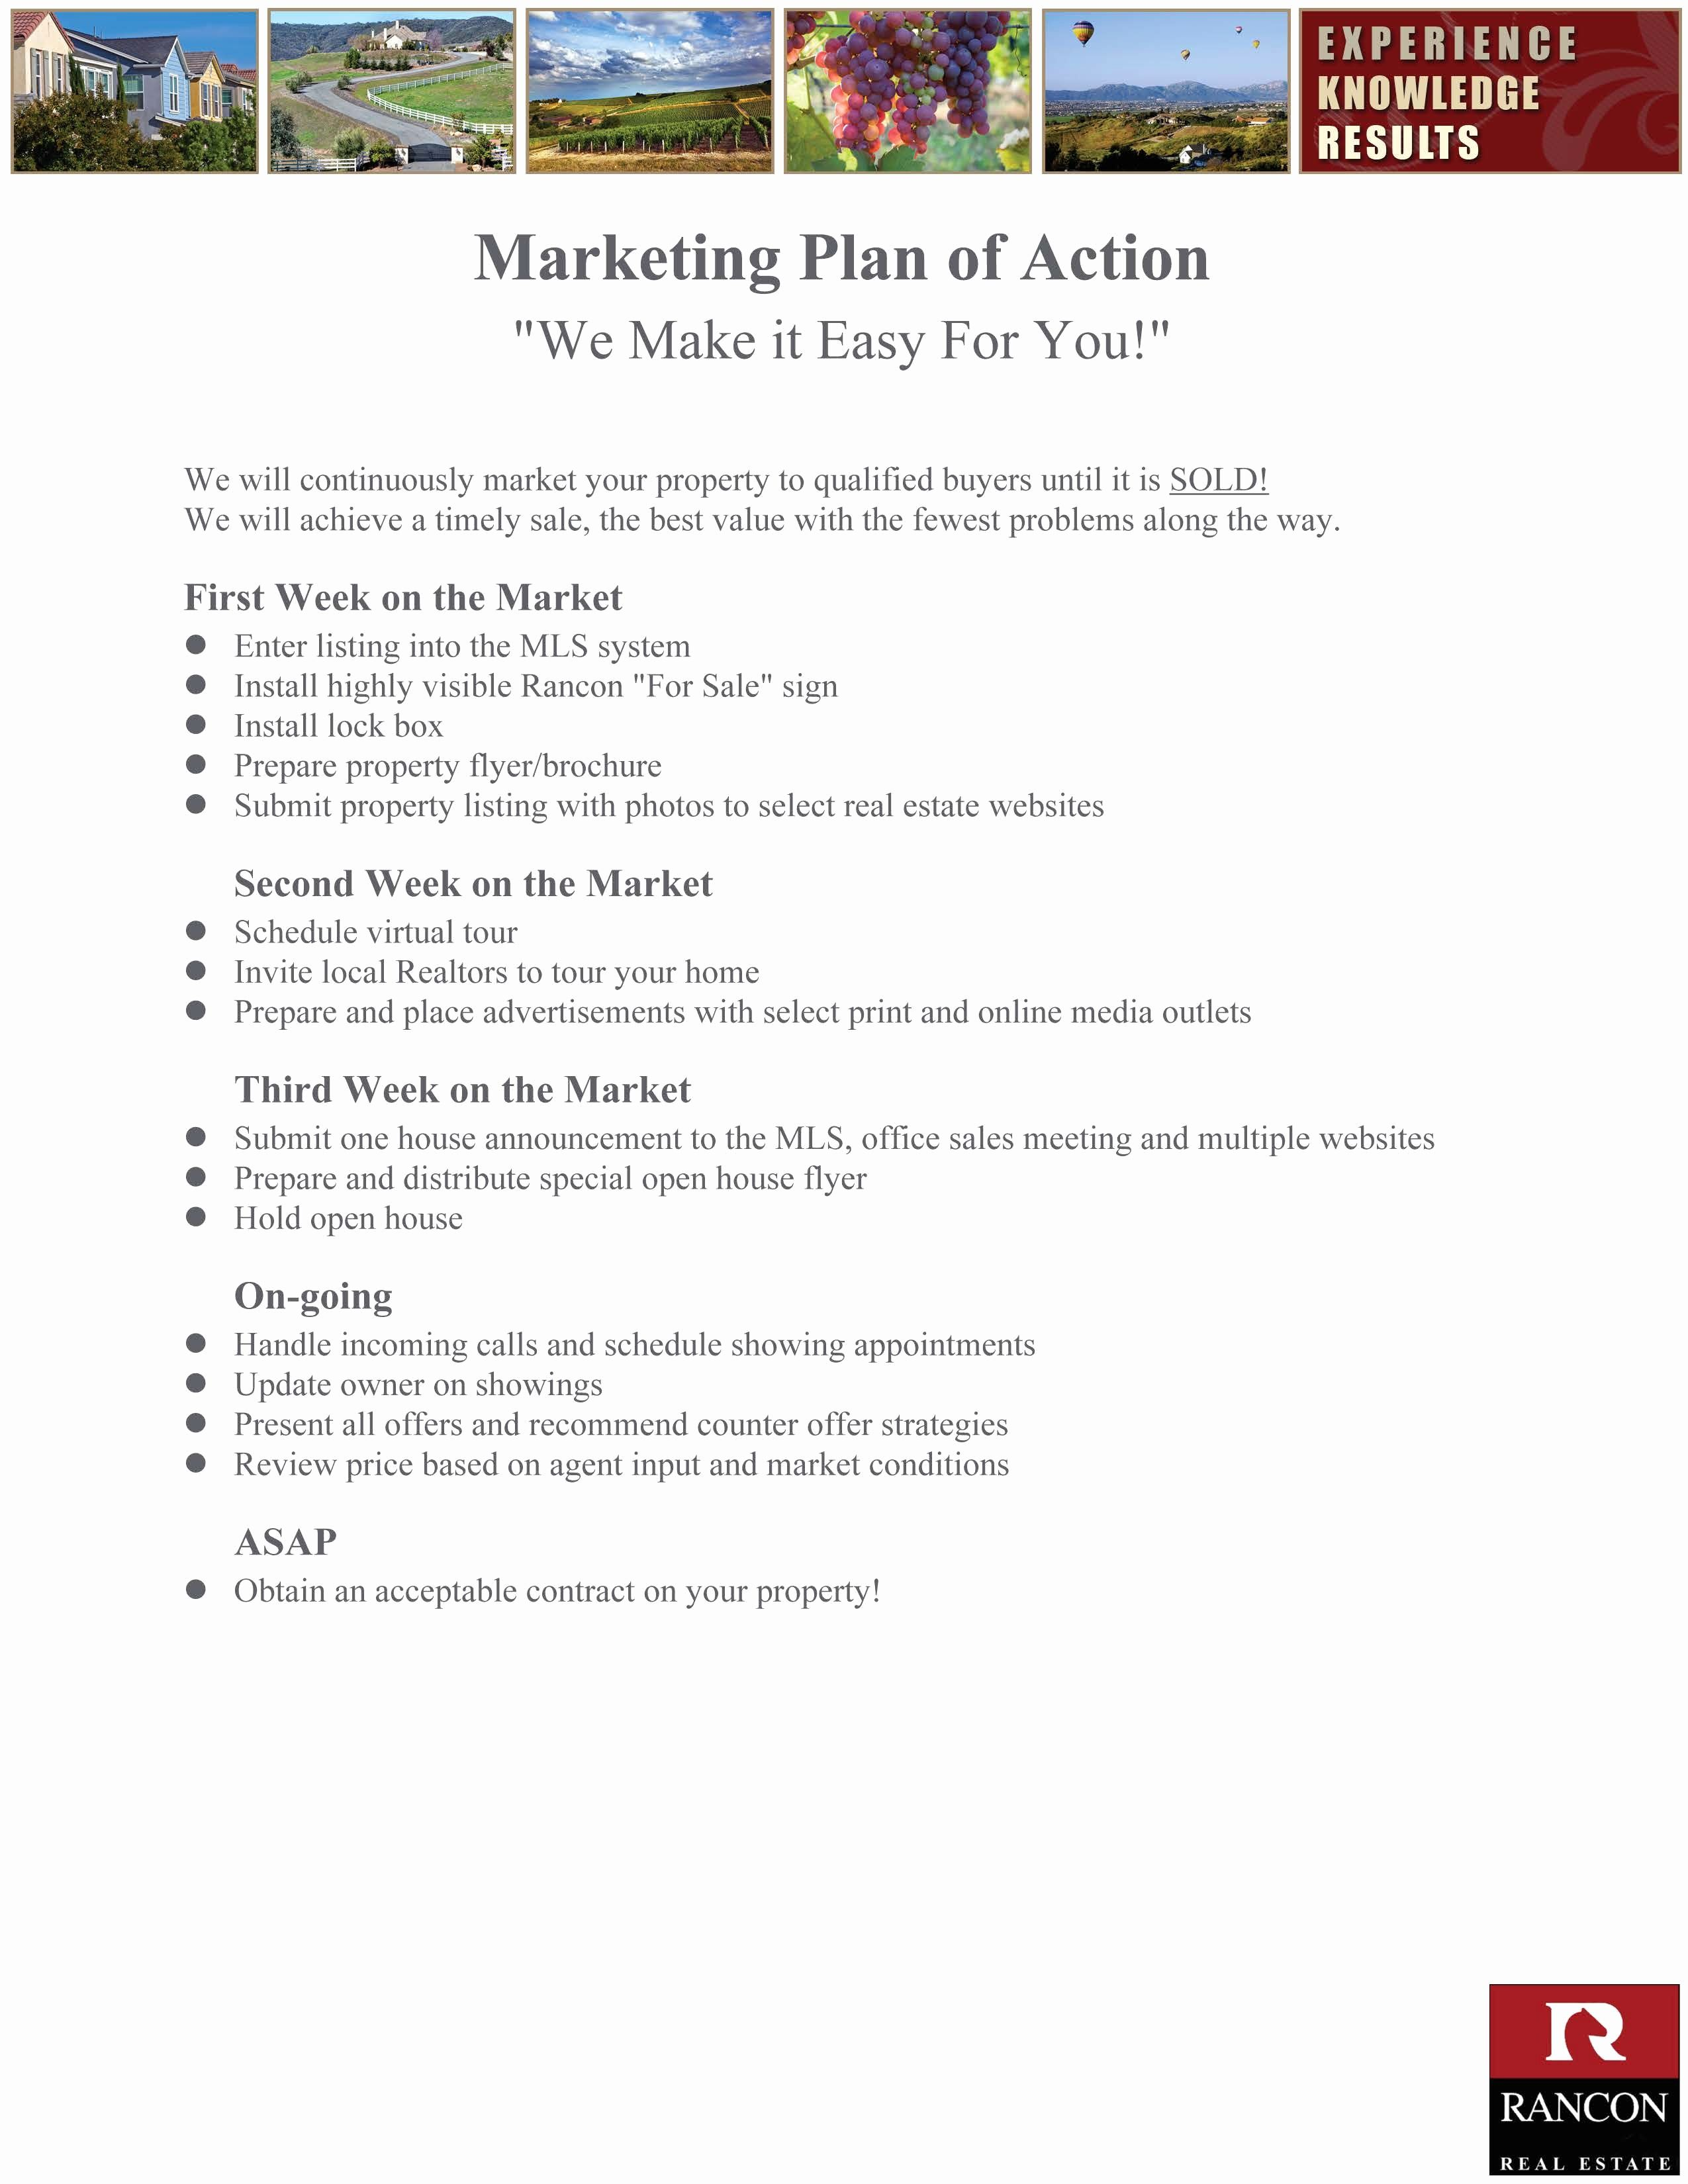 real estate agent marketing plan fresh marketing httpscstuio727a4f